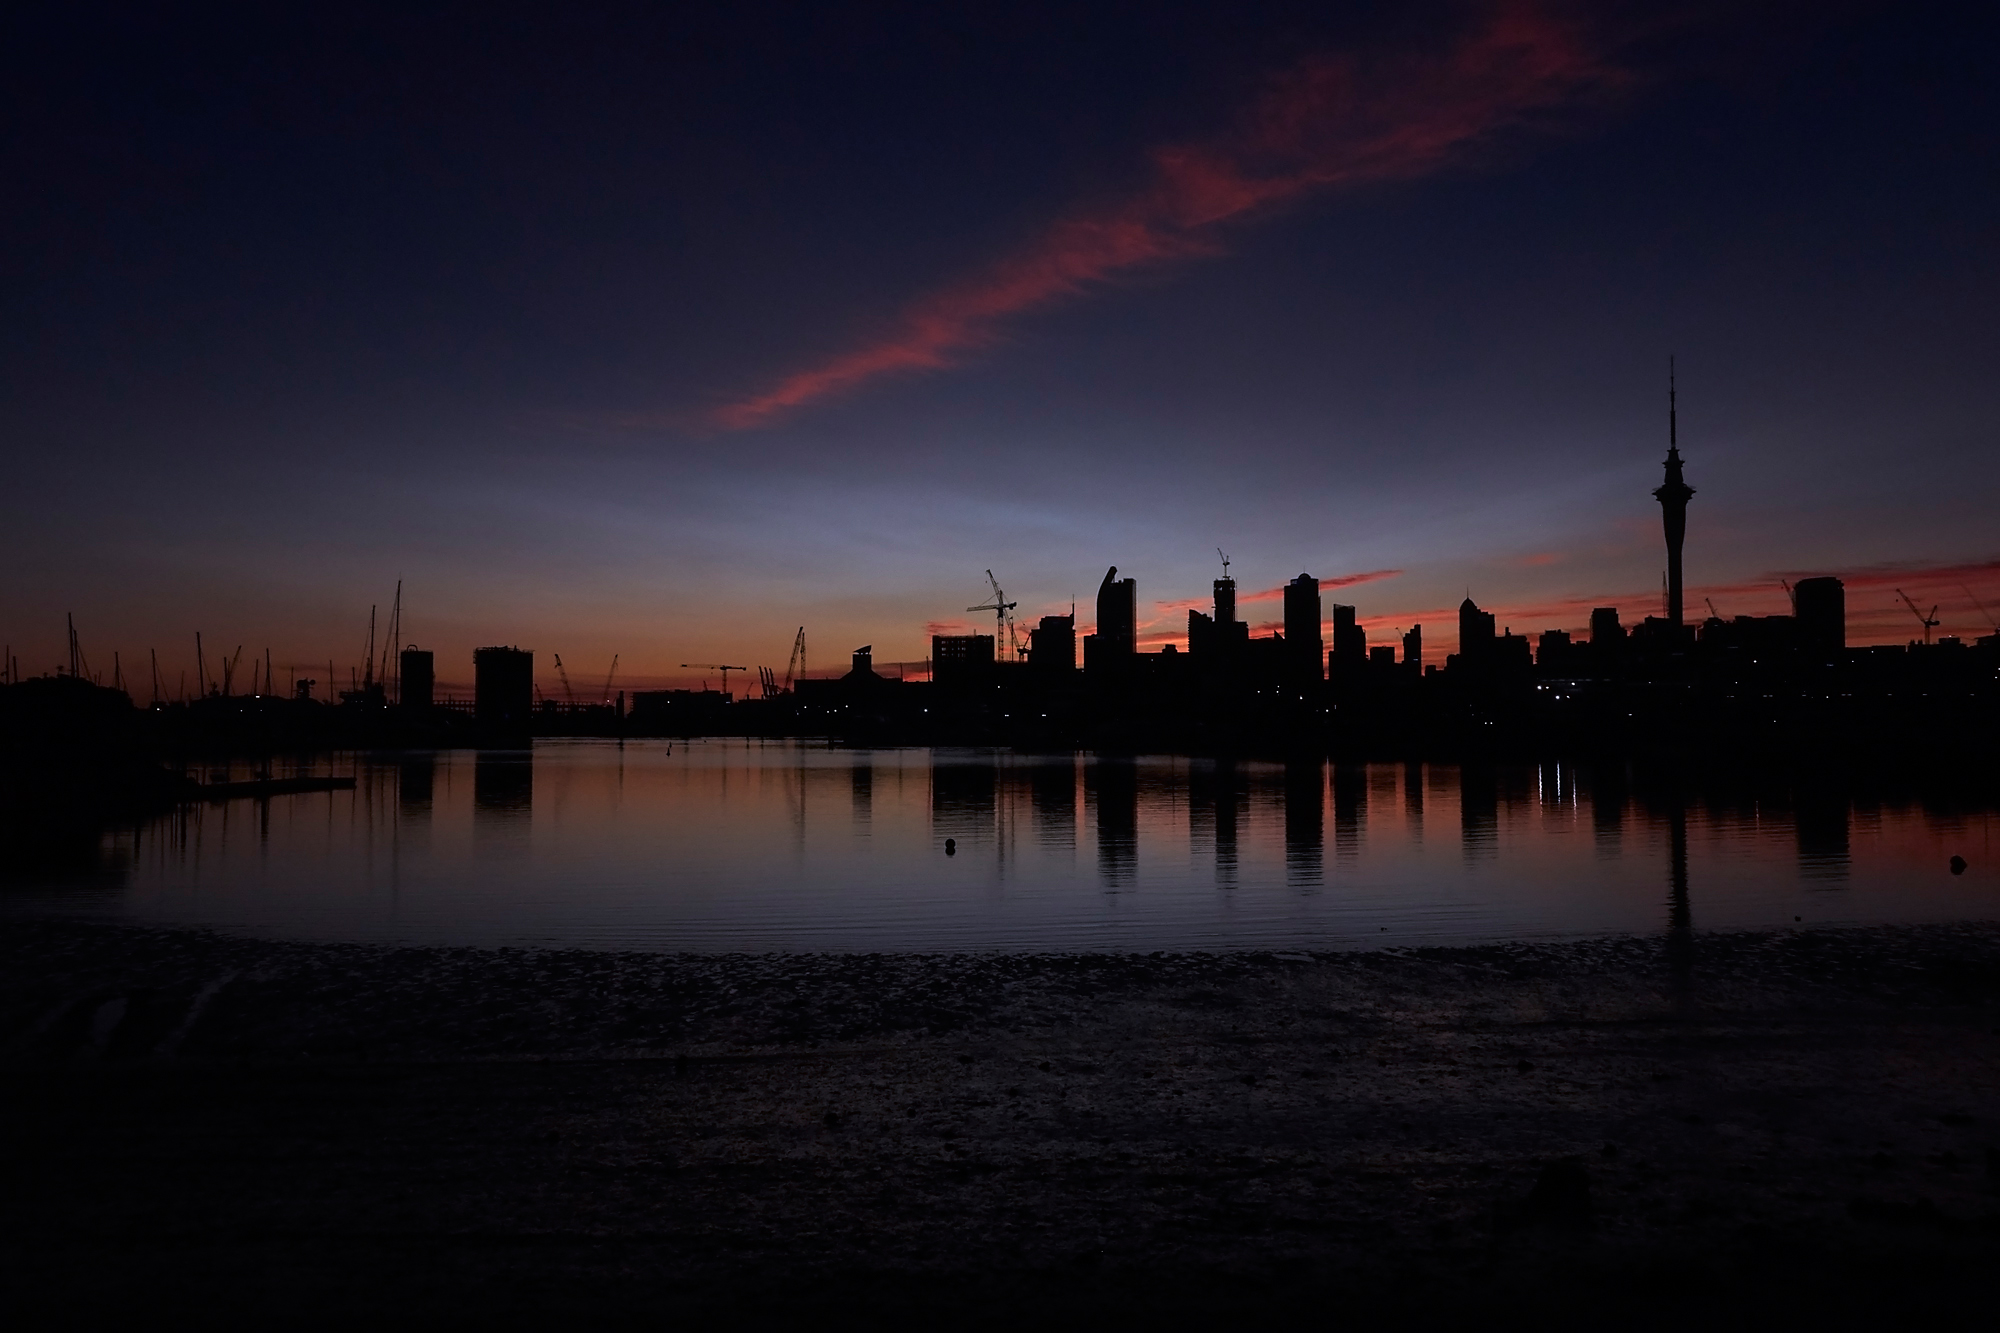 Sunrise at Westhaven, Auckland